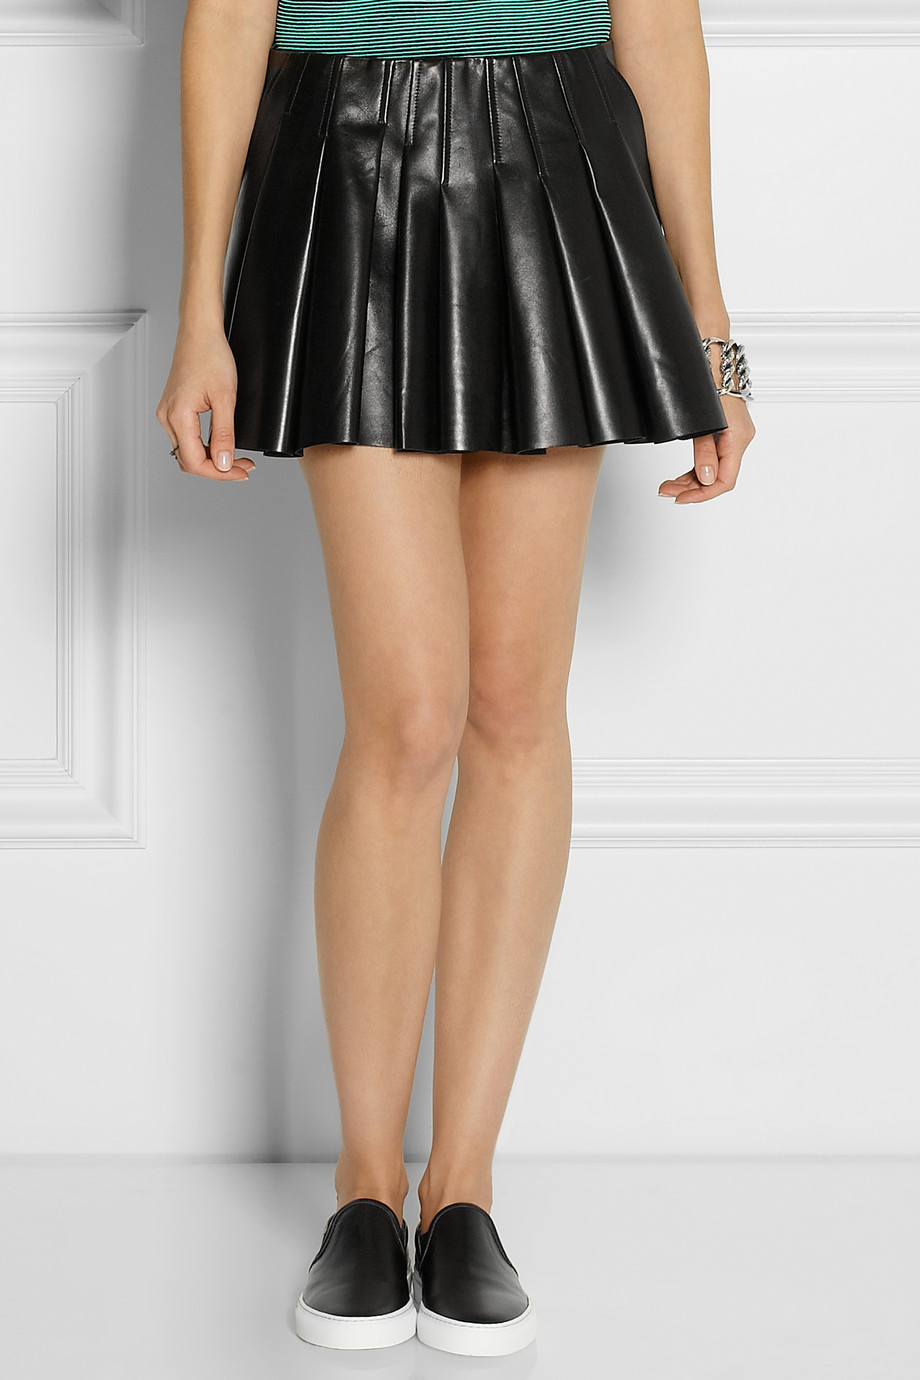 Alexander wang leather pleated skirt – Modern skirts blog for you